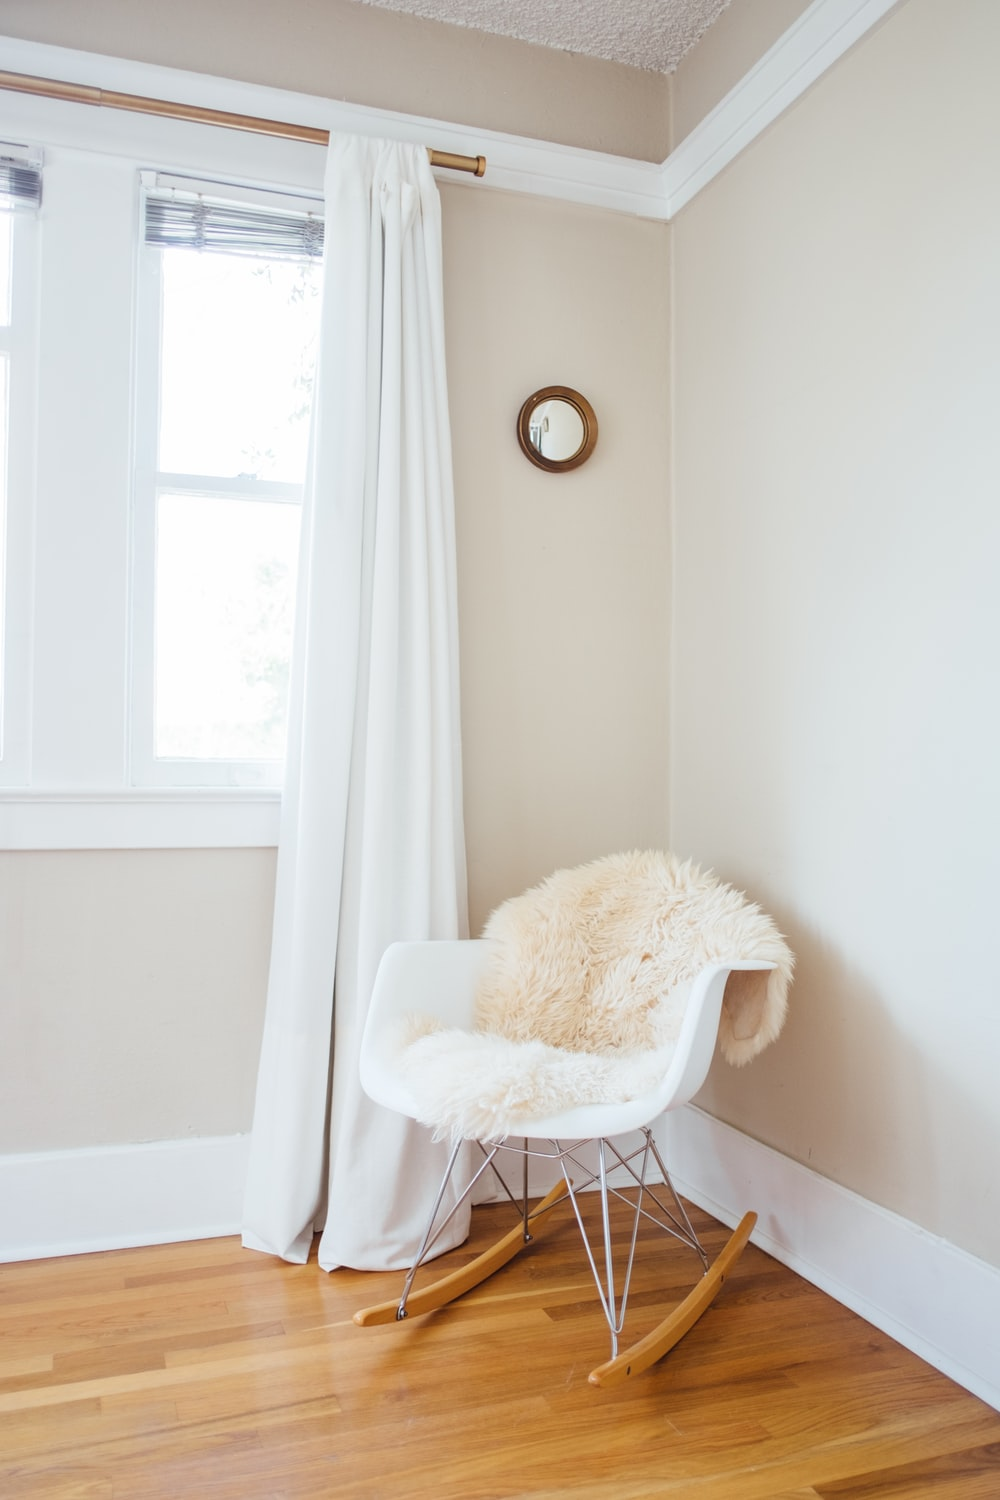 white and brown rocking chair near white painted wall and white window curtain